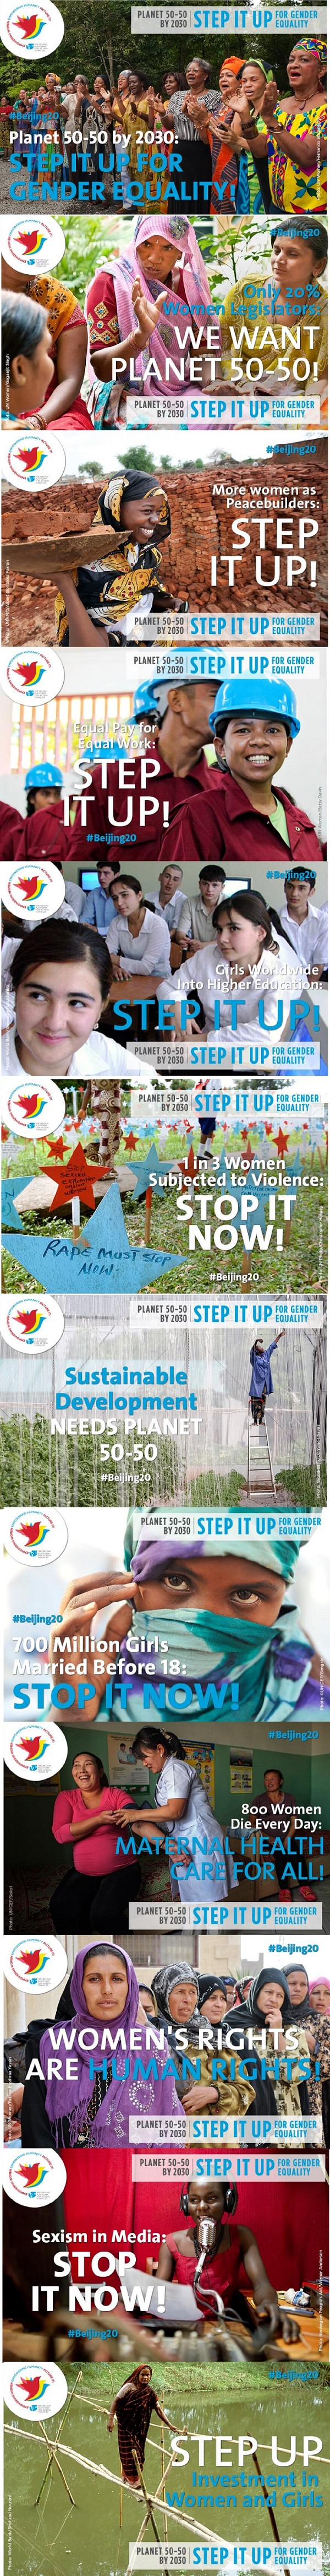 step it up UN WOMEN 2015